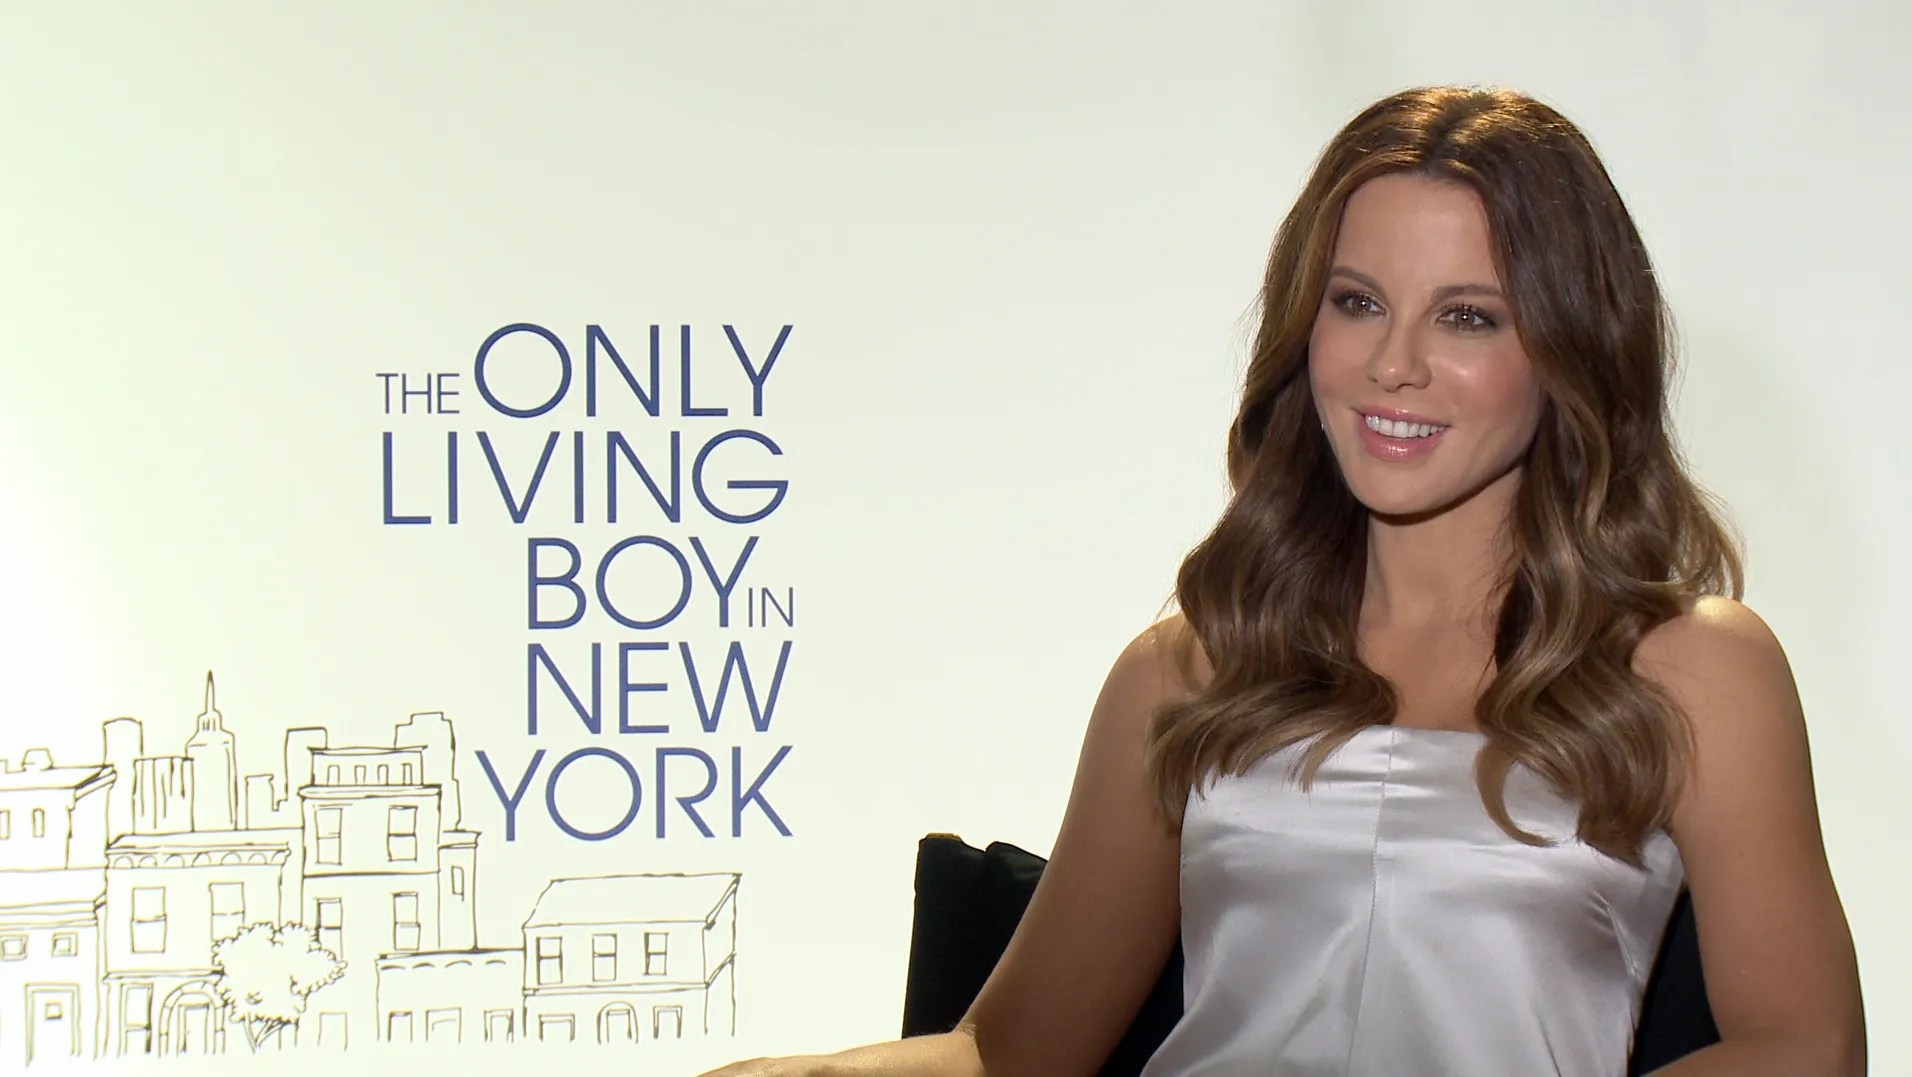 Kate Beckinsale on Jeff Bridges NYC Movies and Her 2